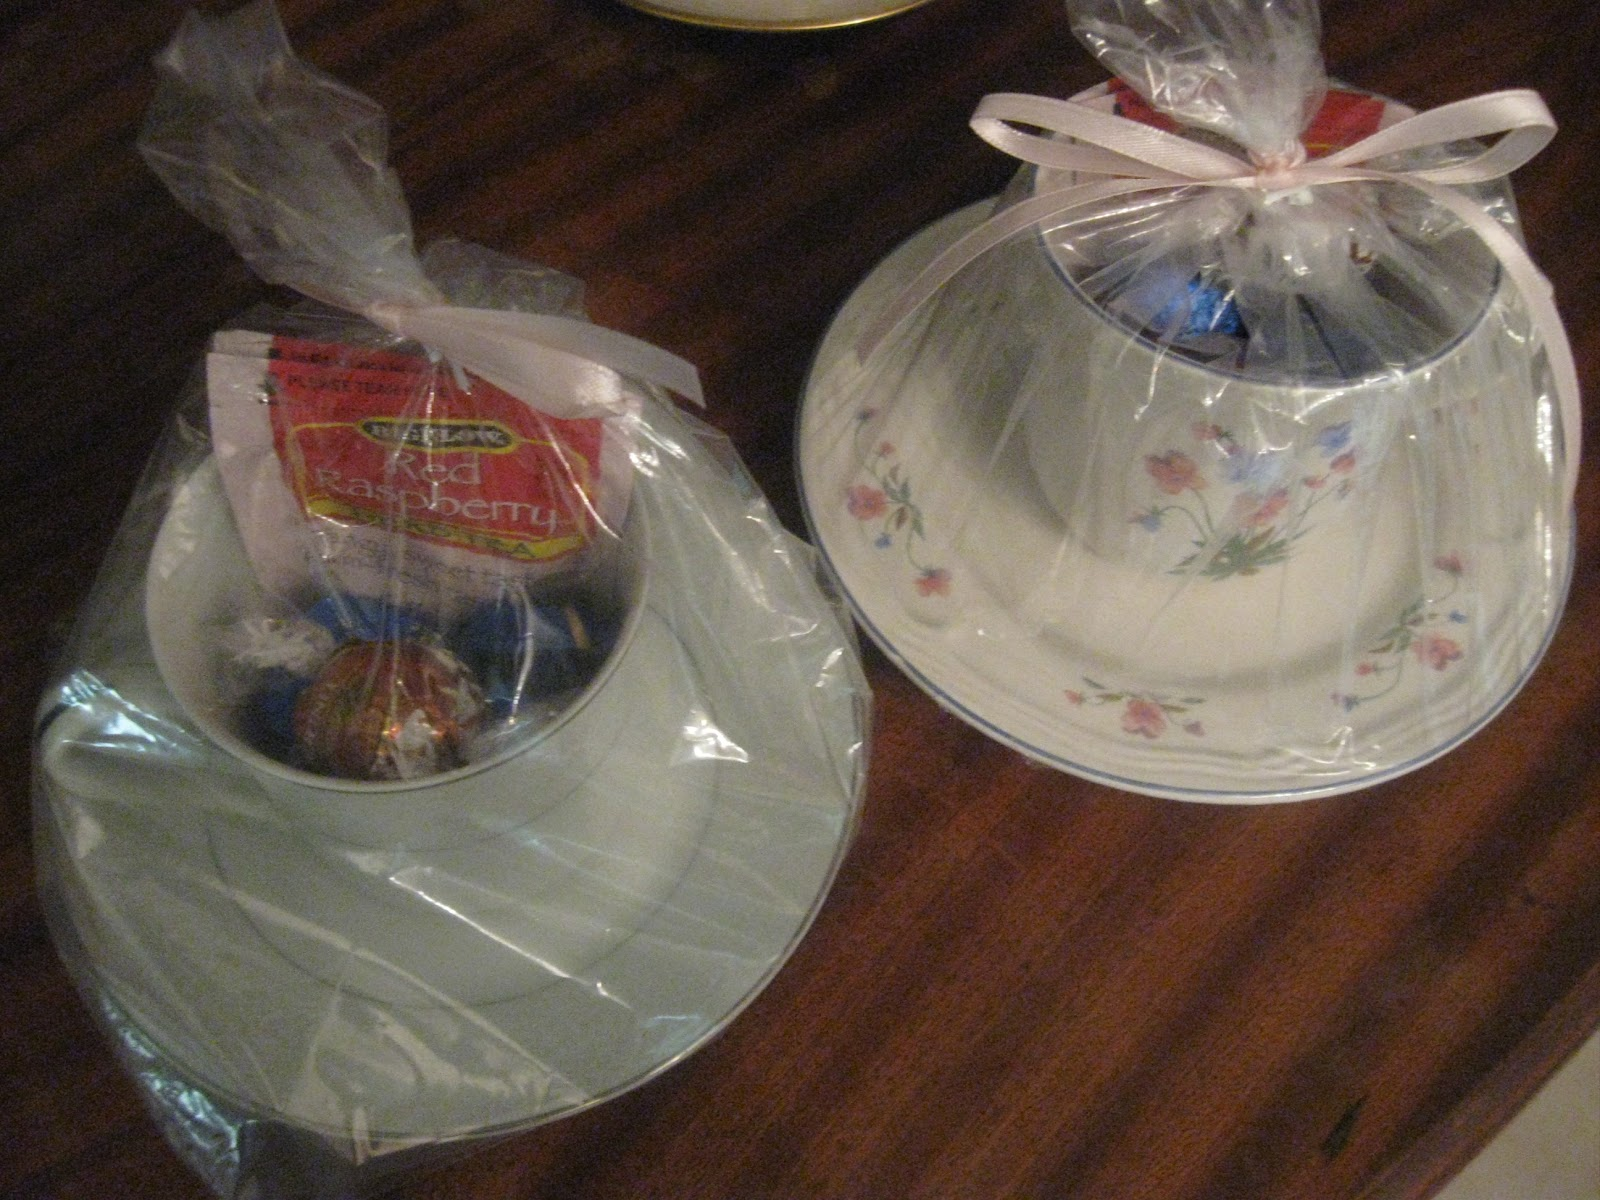 I Filled The Cups With Chocolates And Raspberry Tea Bags Kind We Served At Party Then Placed Each One In A Clear Plastic Bag Tied Them Up